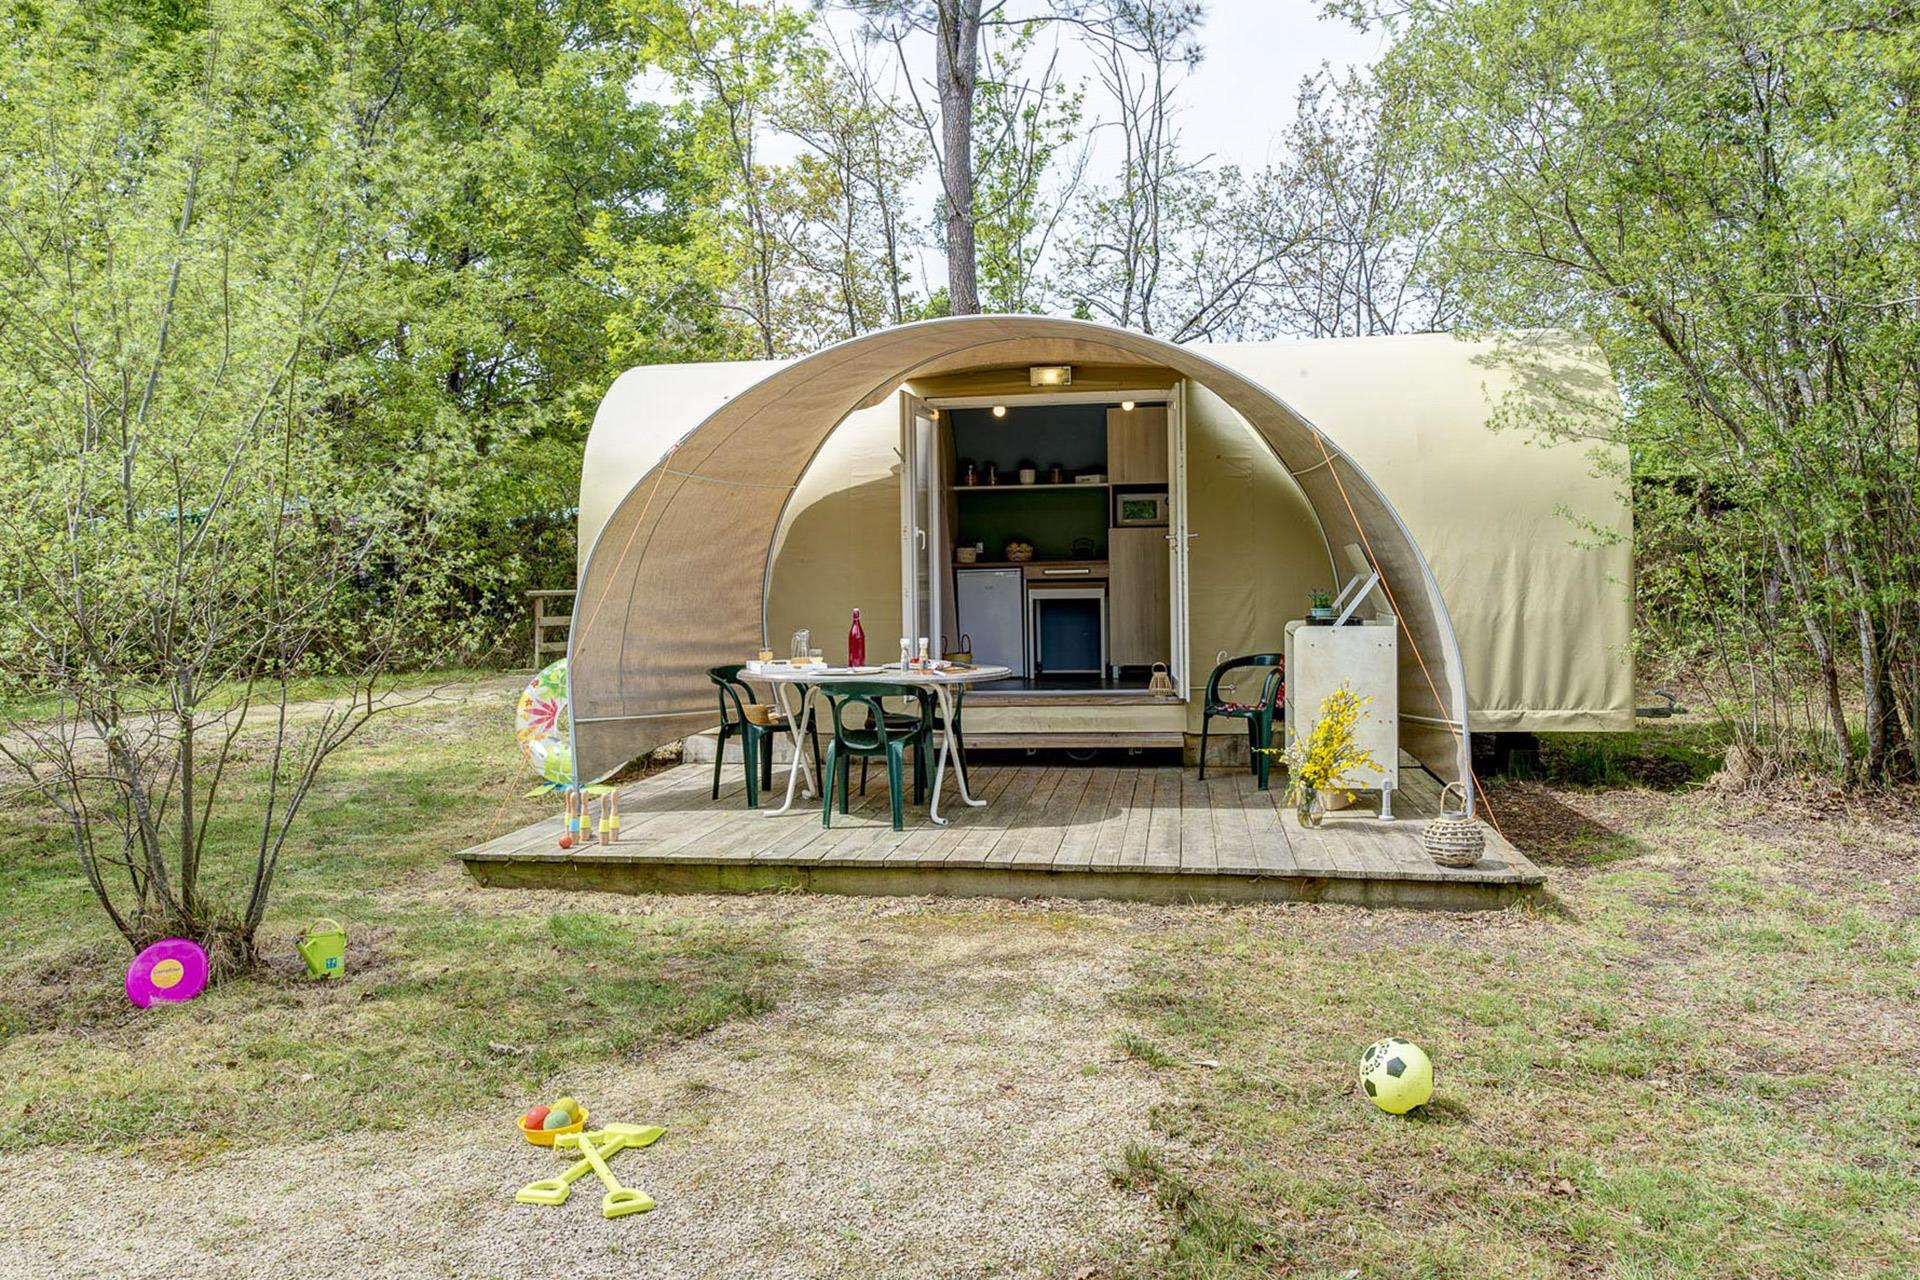 Mietunterkunft - Coco Sweet 2 Zimmer* - Camping Sandaya Le Col Vert